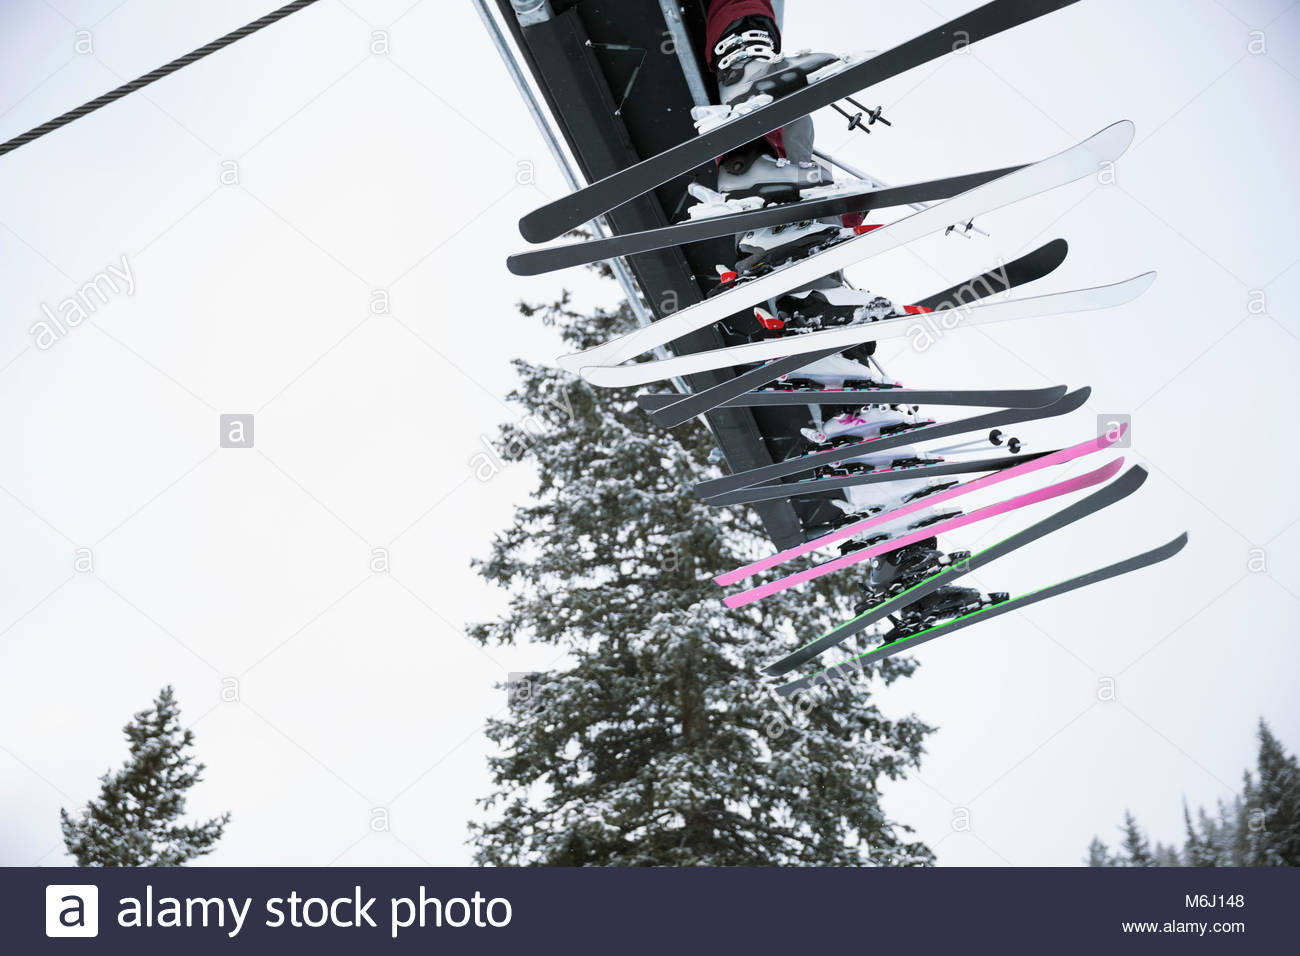 Skier skis dangling from chair lift - Stock Image